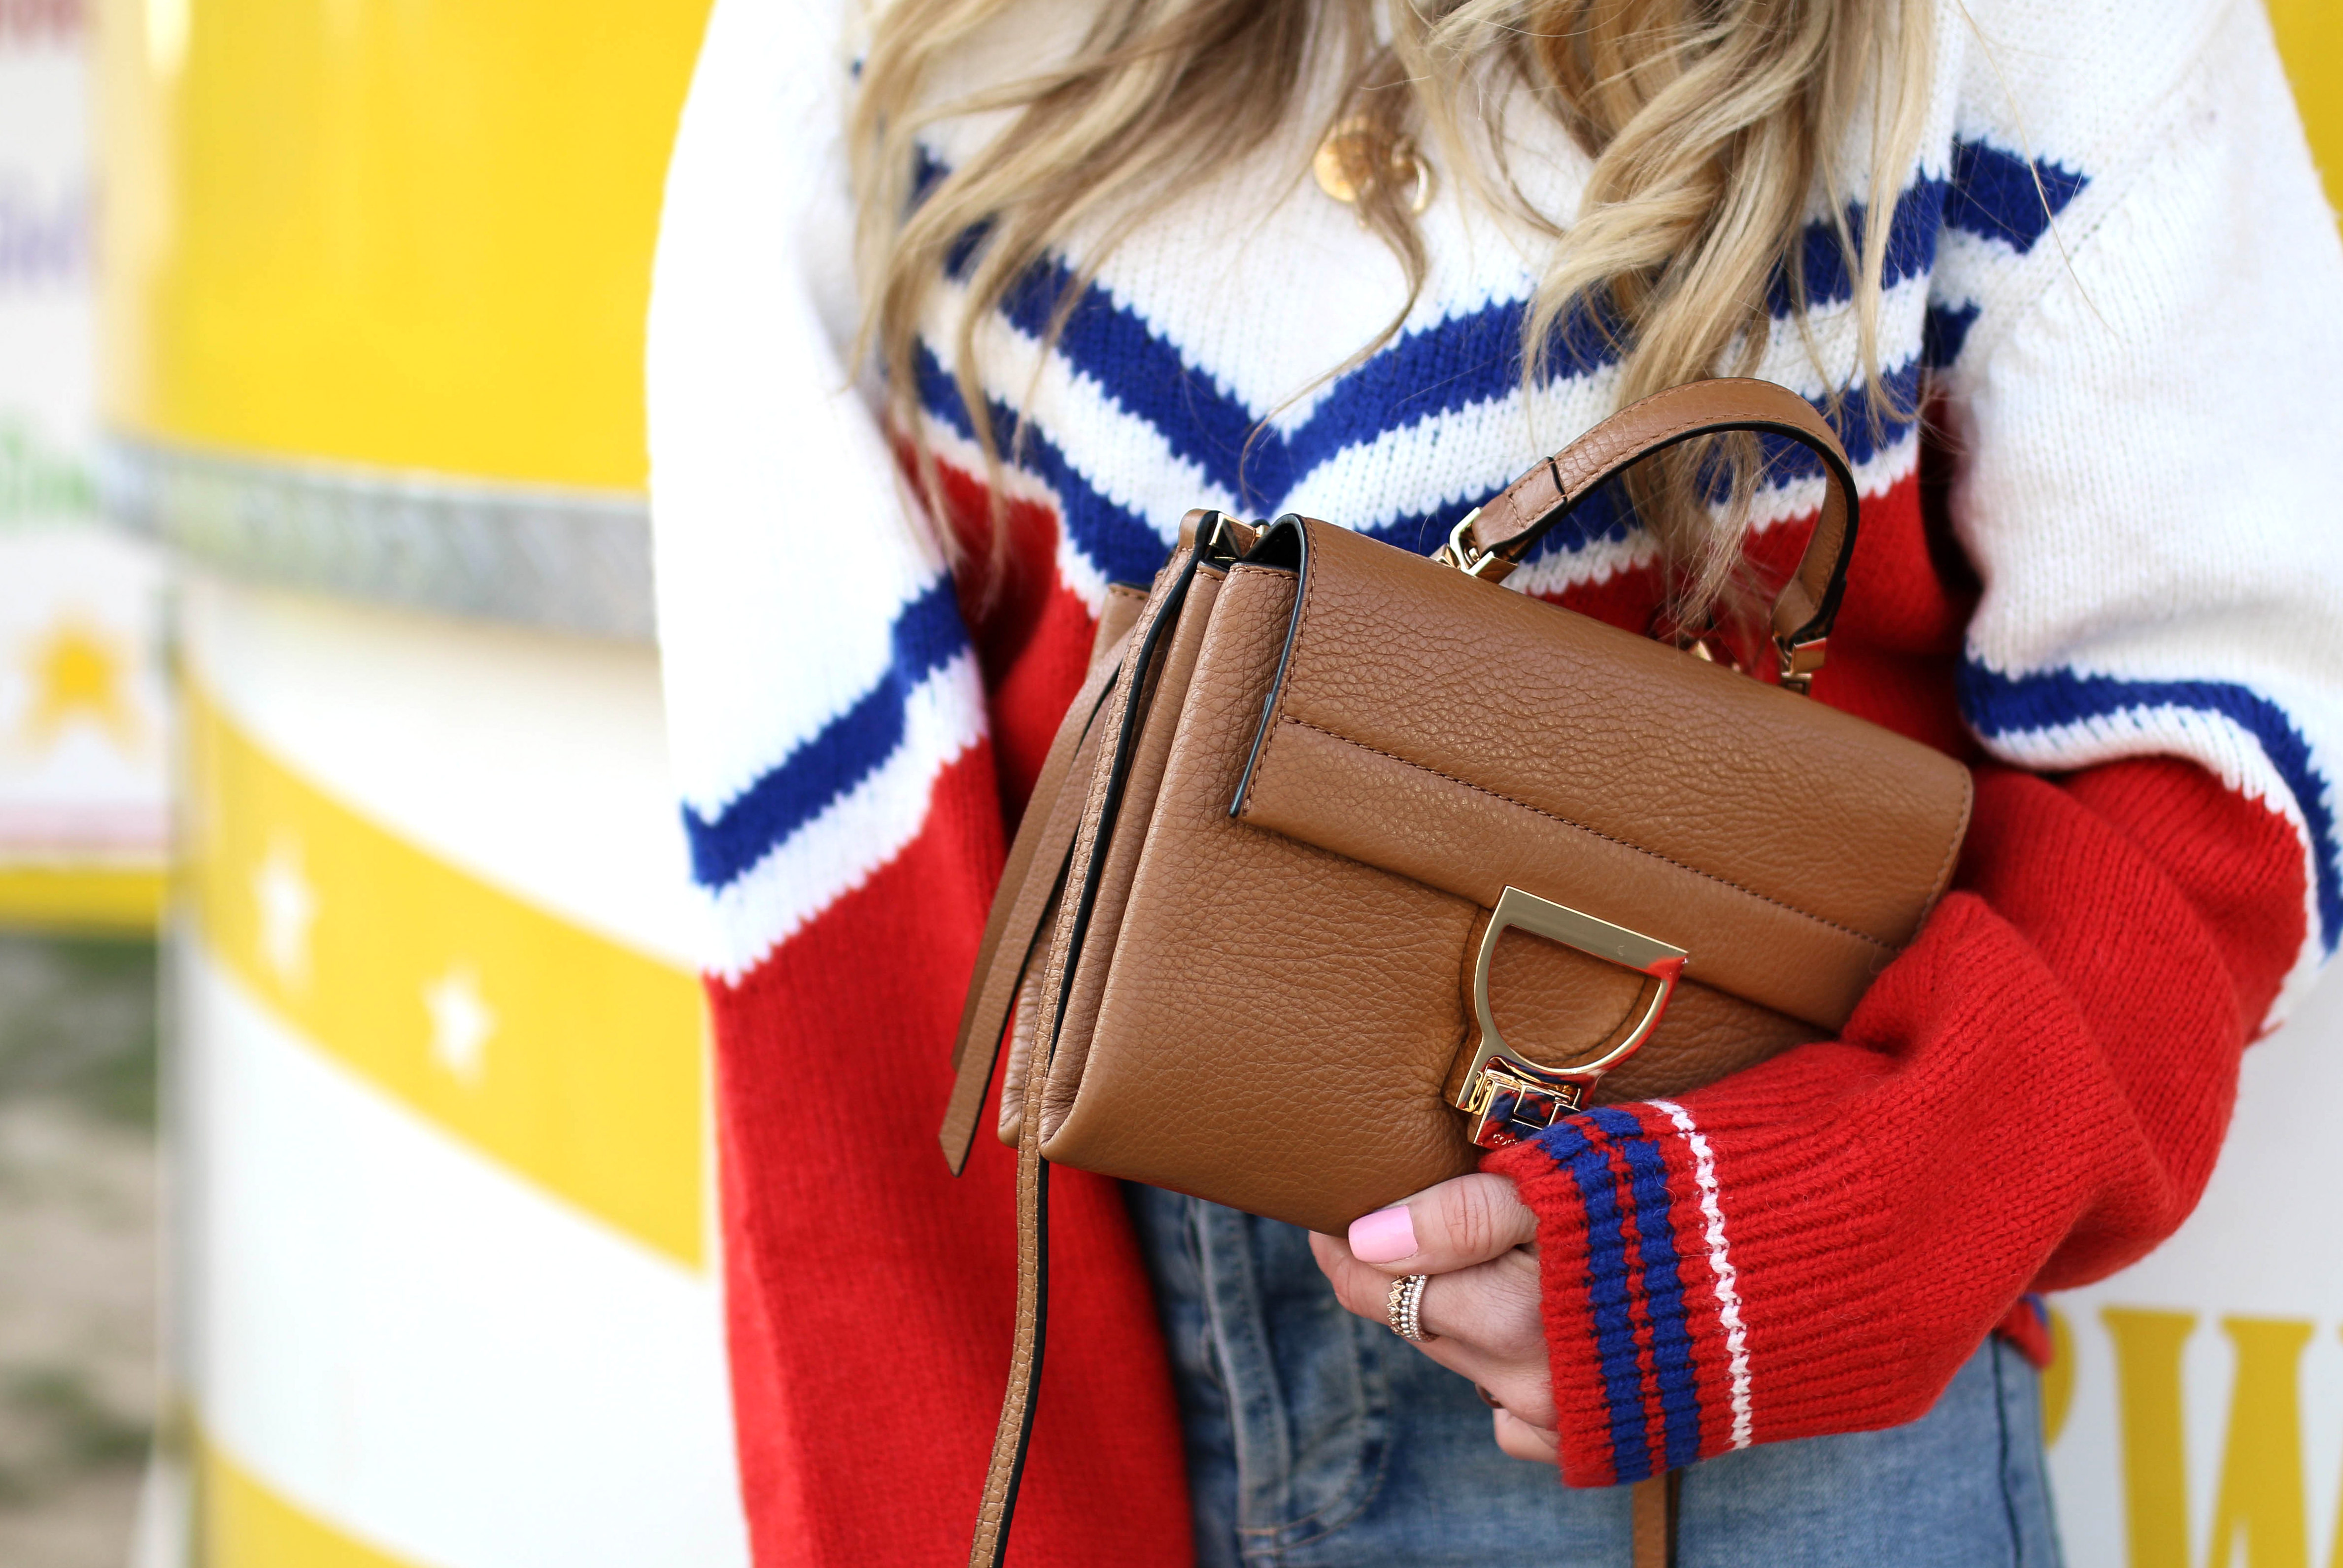 & other stories retro sweater coccinelle arlettis mini bag